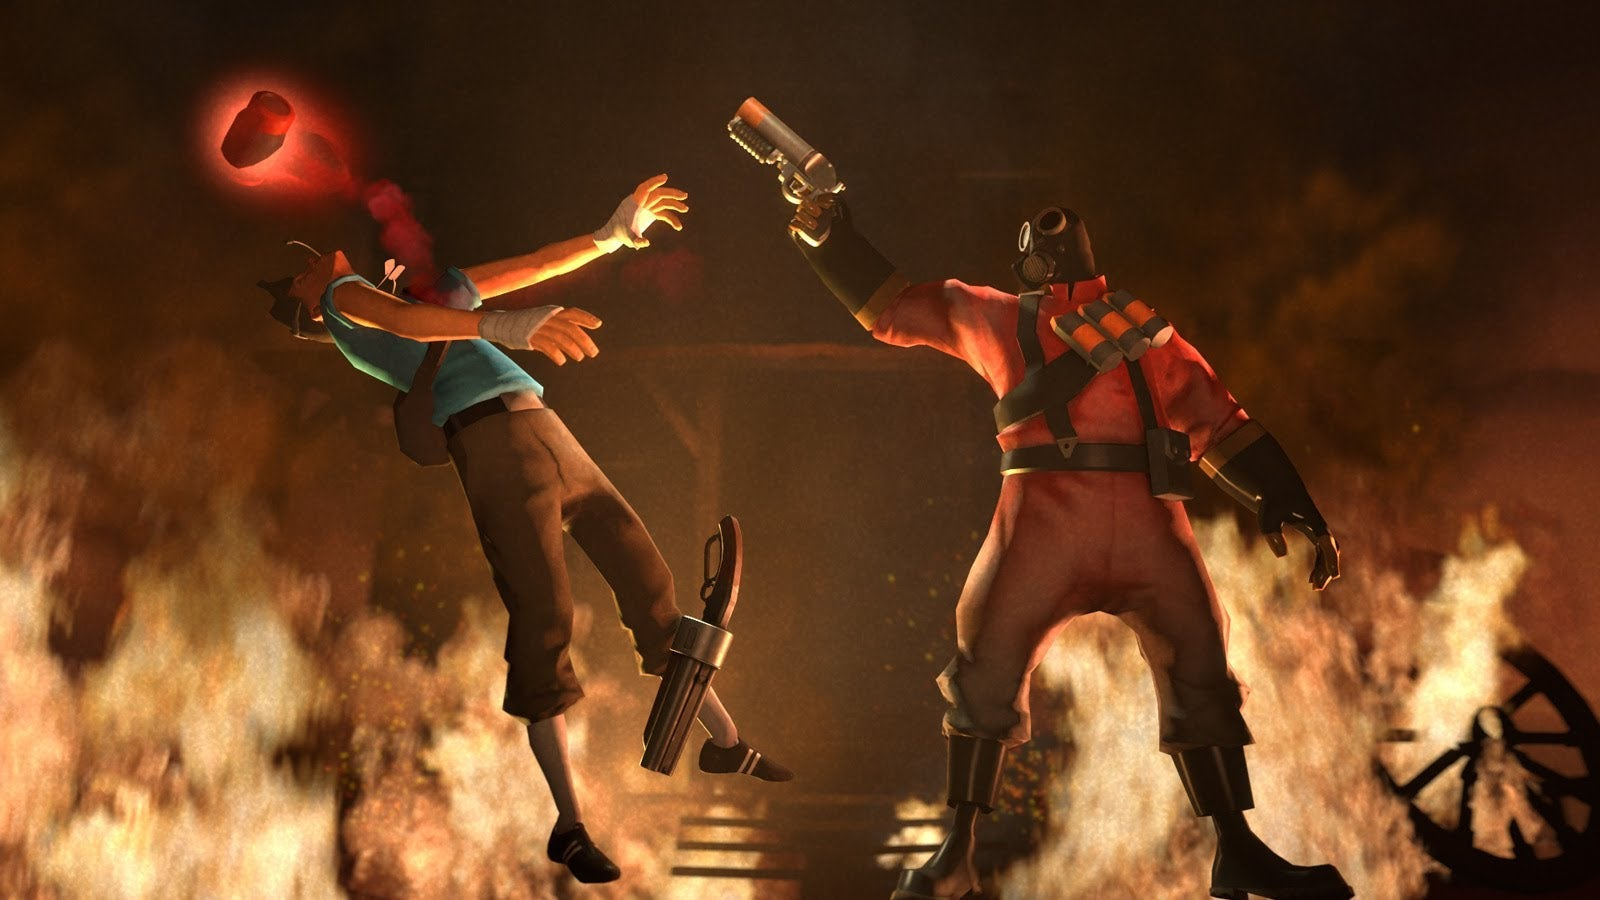 Valve Finally Cracks Down On One Of The Biggest Team Fortress 2 Cheats